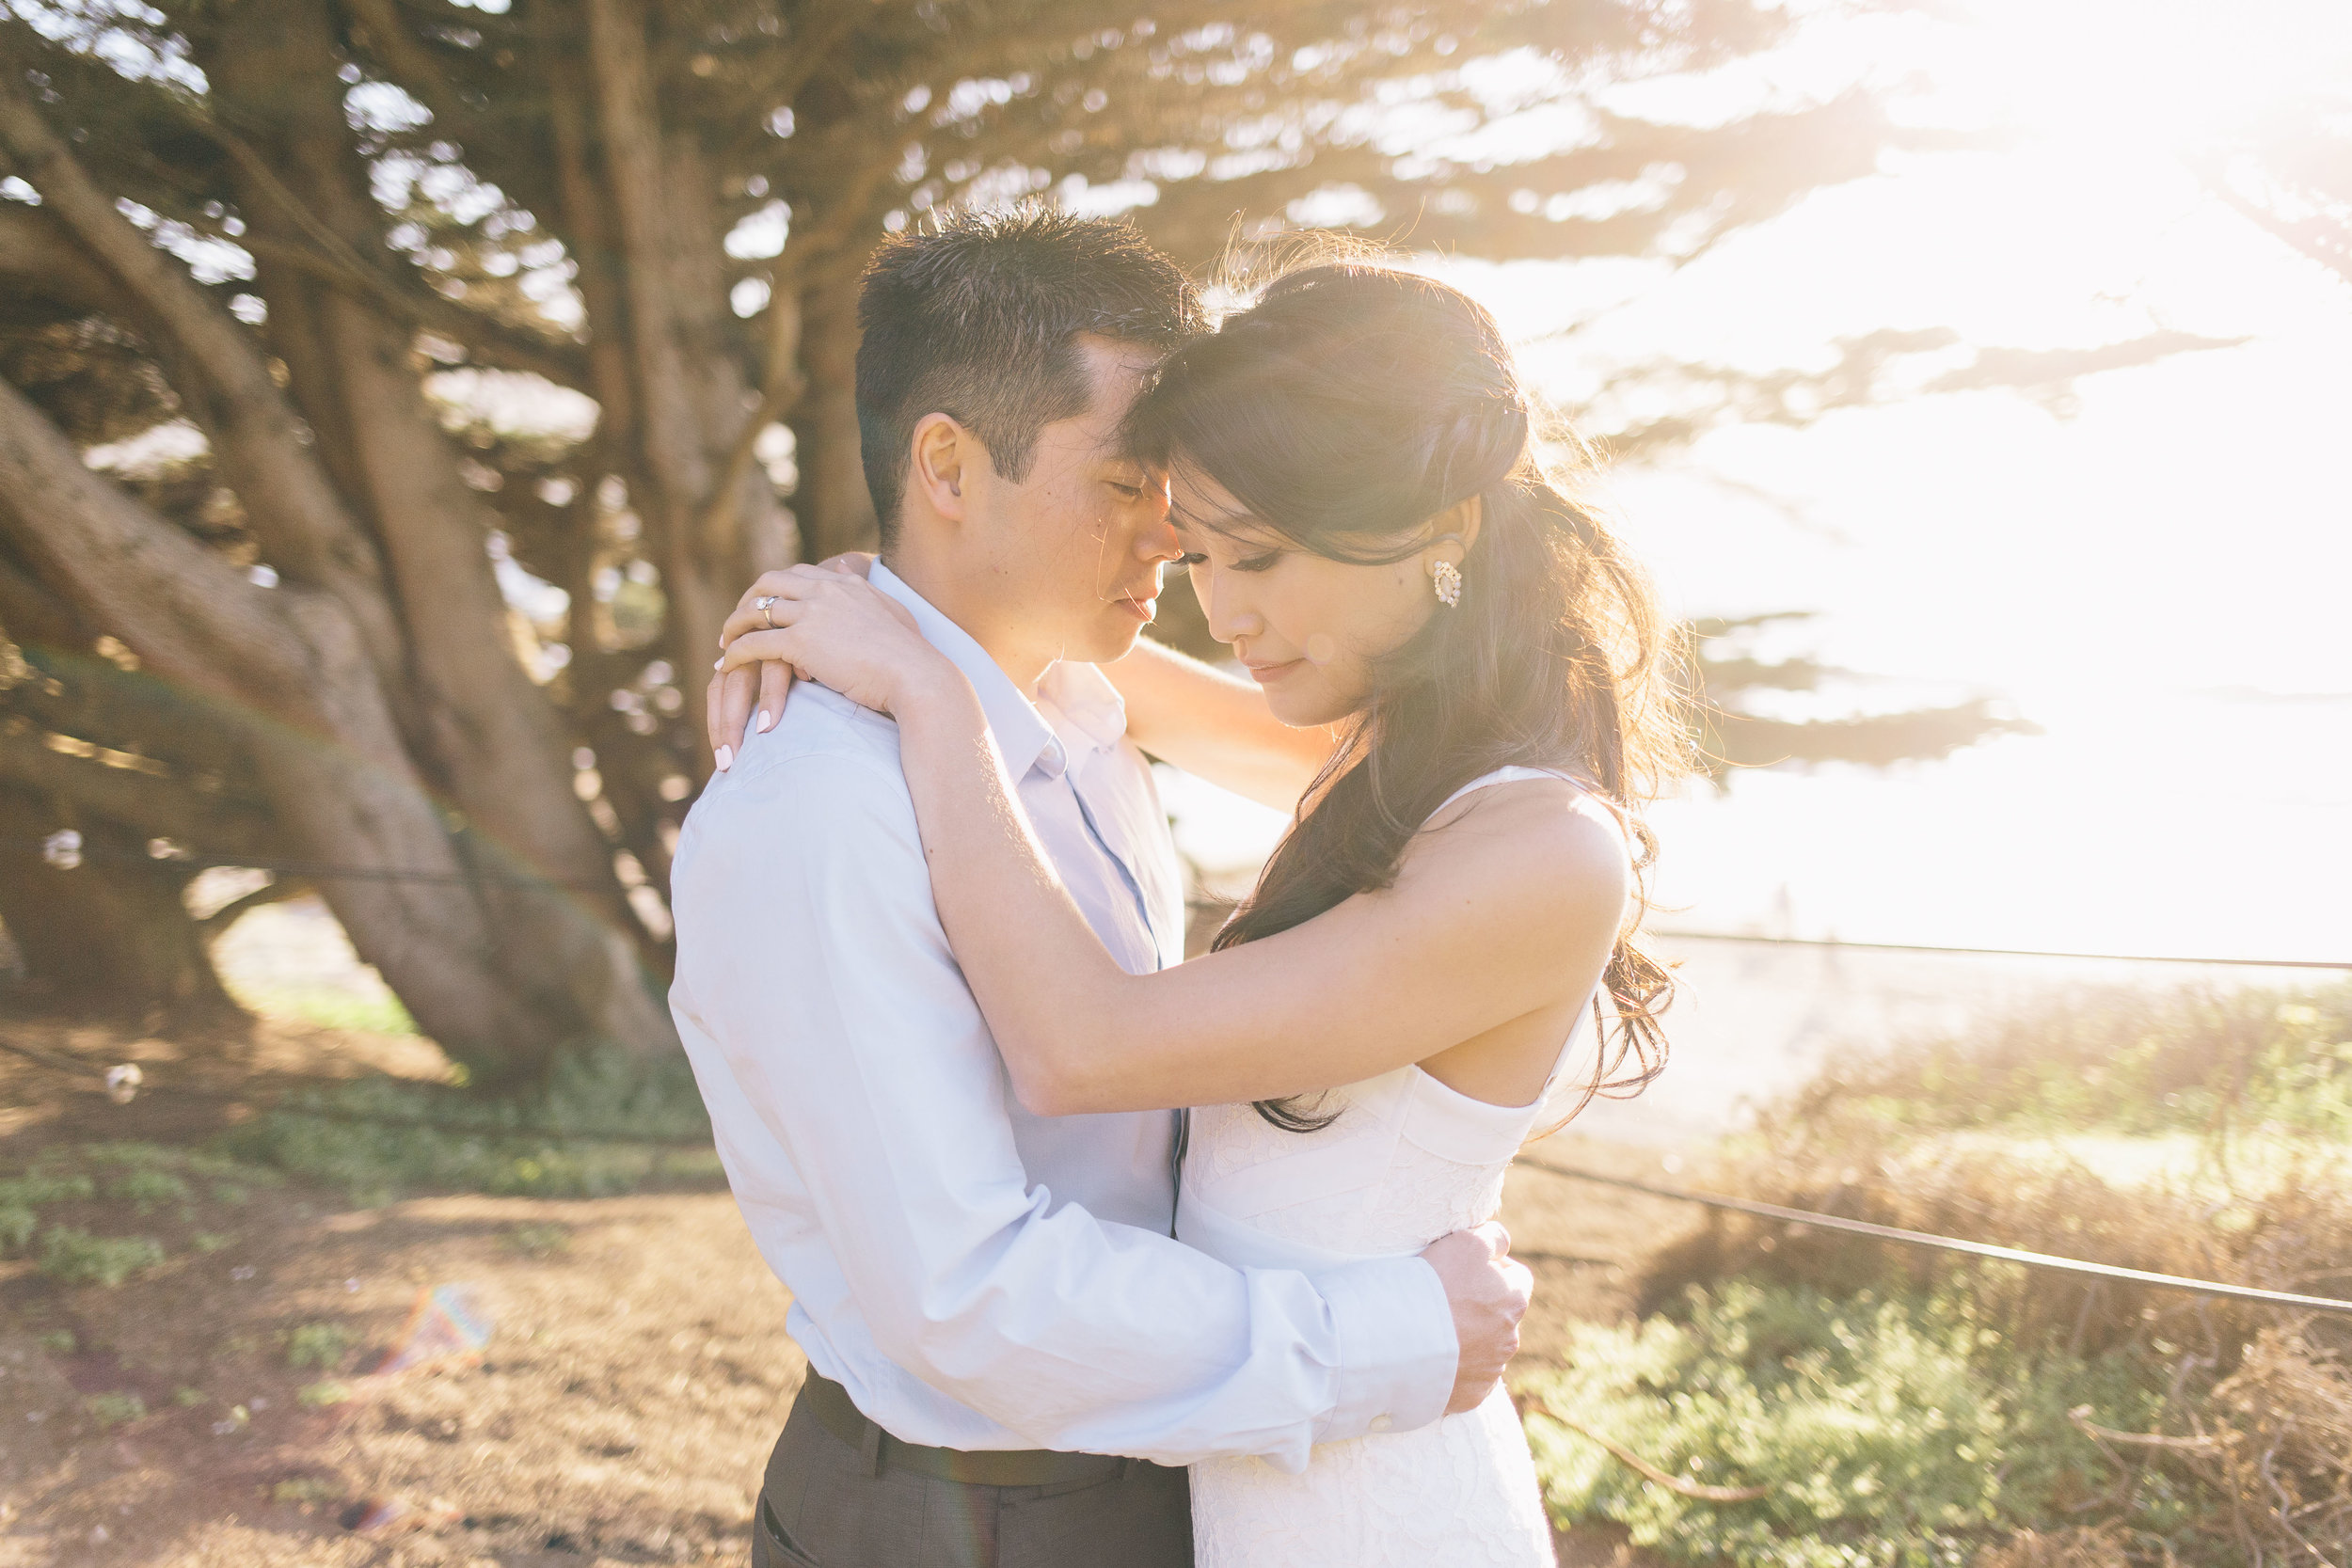 Best Engagement Photo Locations in San Francisco - Baker Beach Engagement Photos by JBJ Pictures (14).jpg